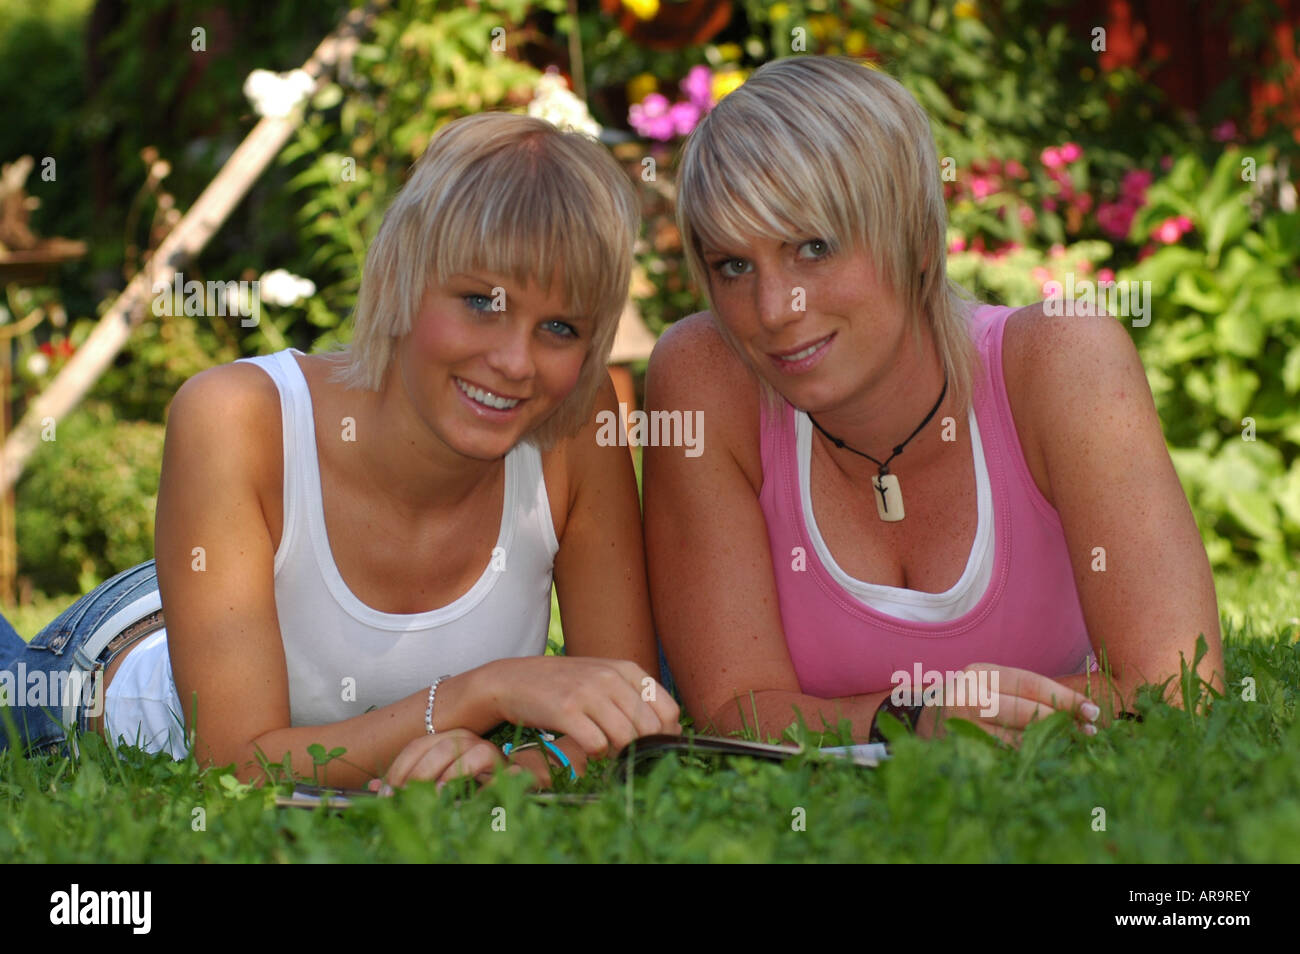 junge Mädchen mit Zeitschrift | young girls lying in the grass with a magazine Stock Photo